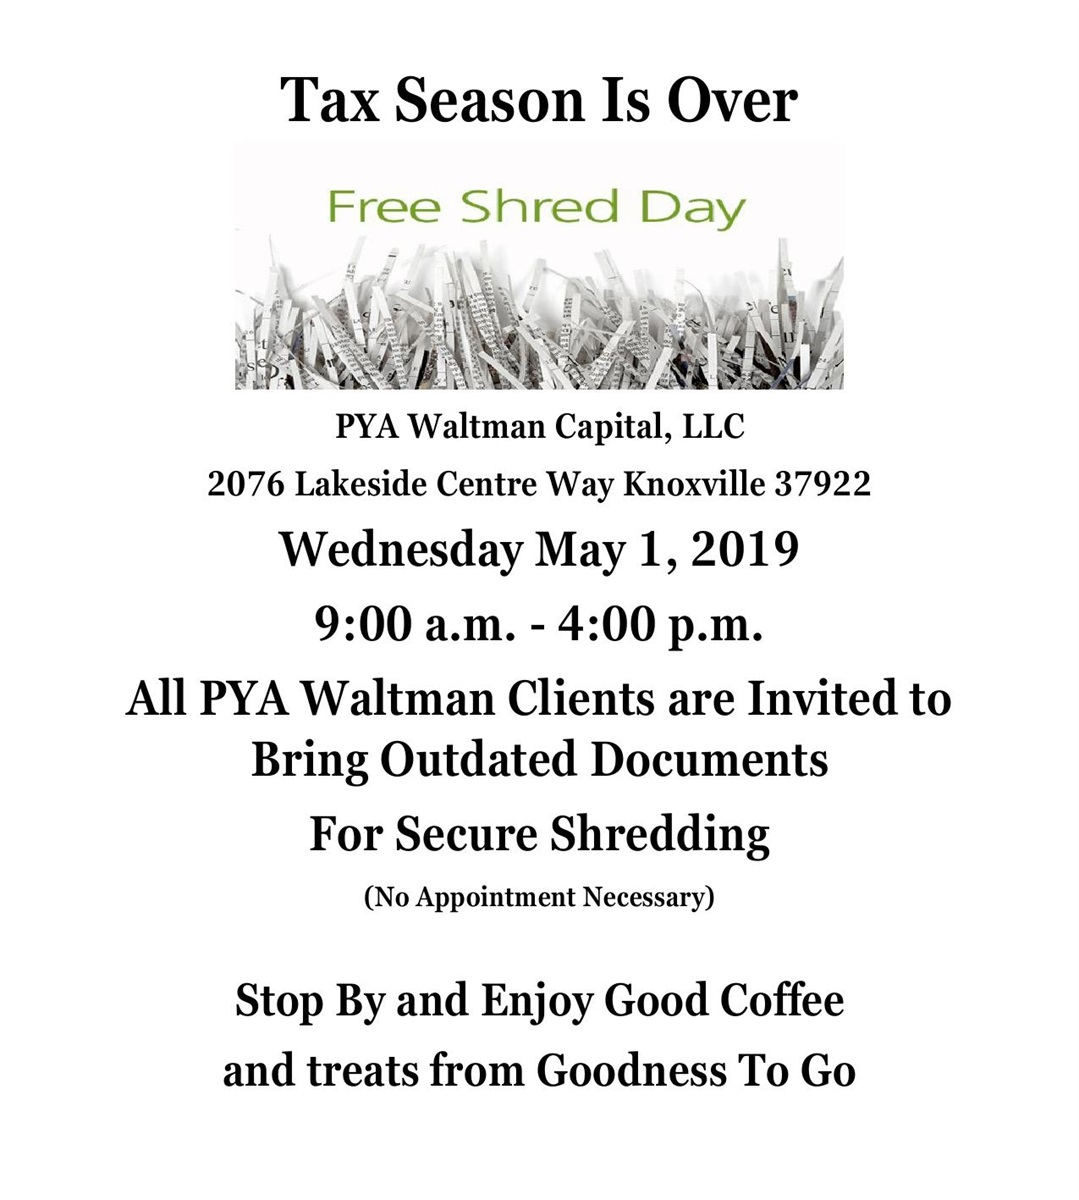 Free Shred Day — PYA Waltman Capital, LLC